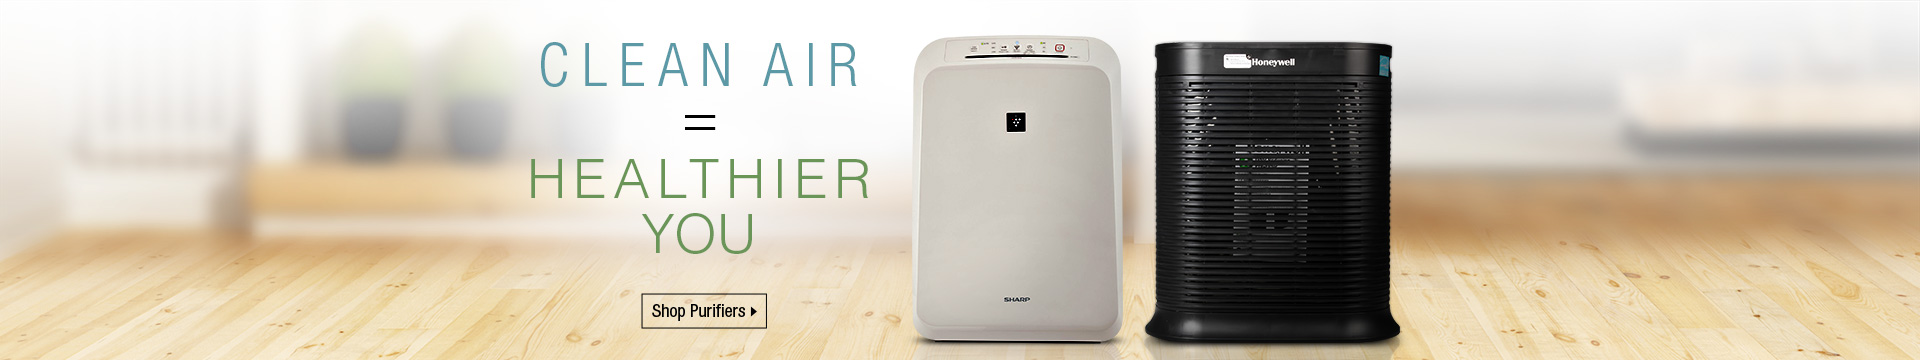 Heating Amp Cooling Air Conditioners Dehumidifiers Amp More